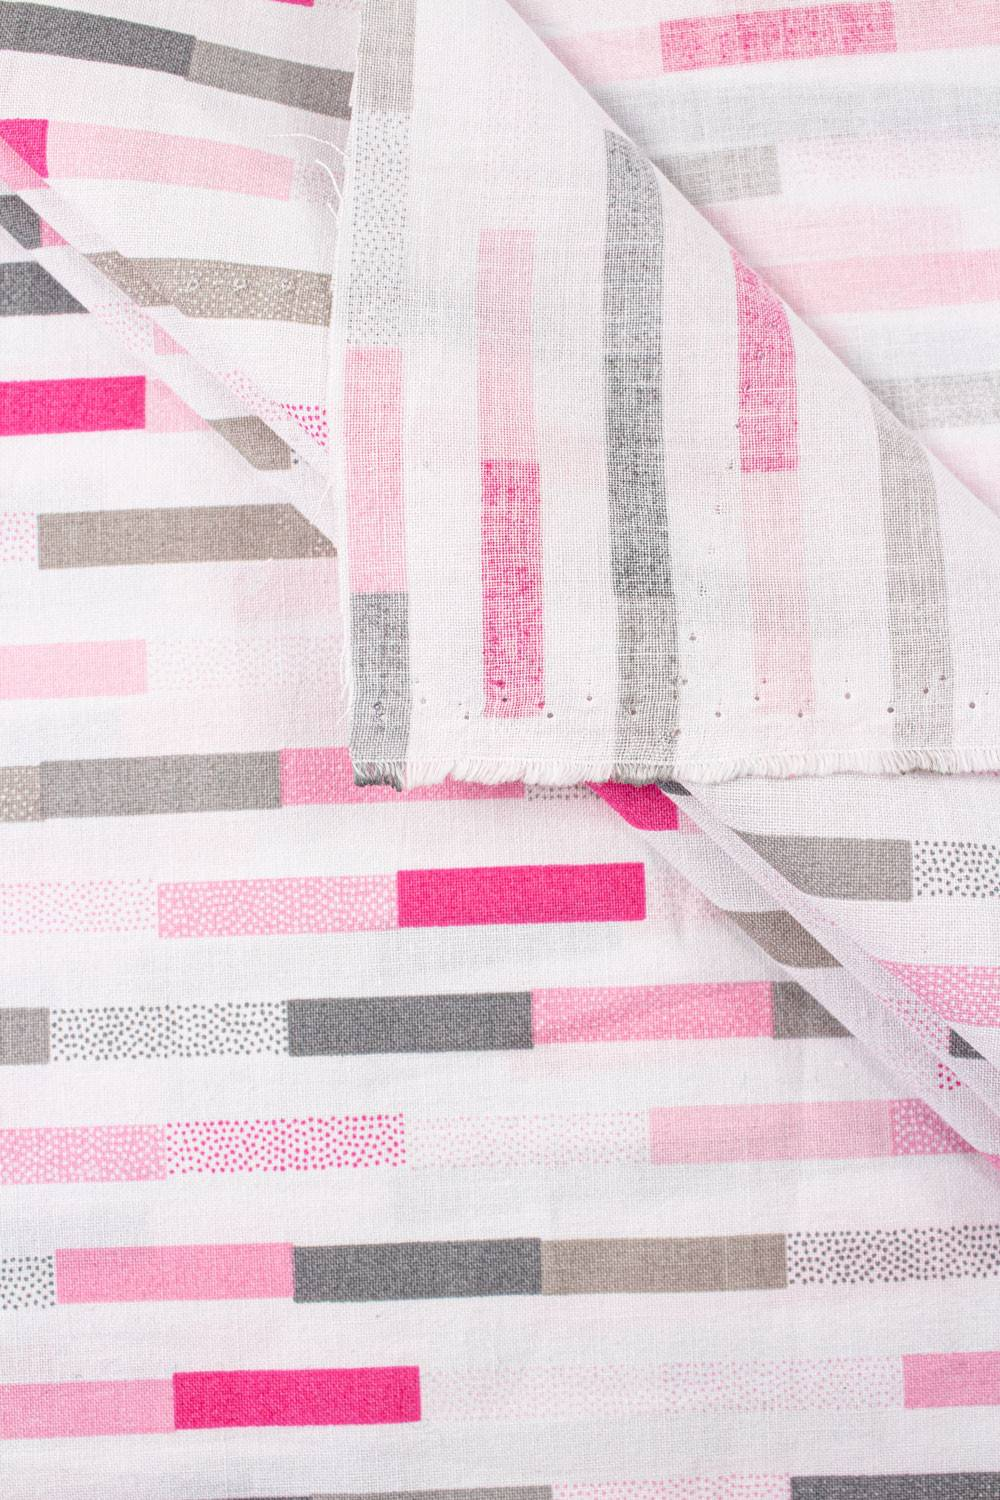 Fabric - Cotton - White With Pink & Grey Stripes - 165 cm - 120 g/m2